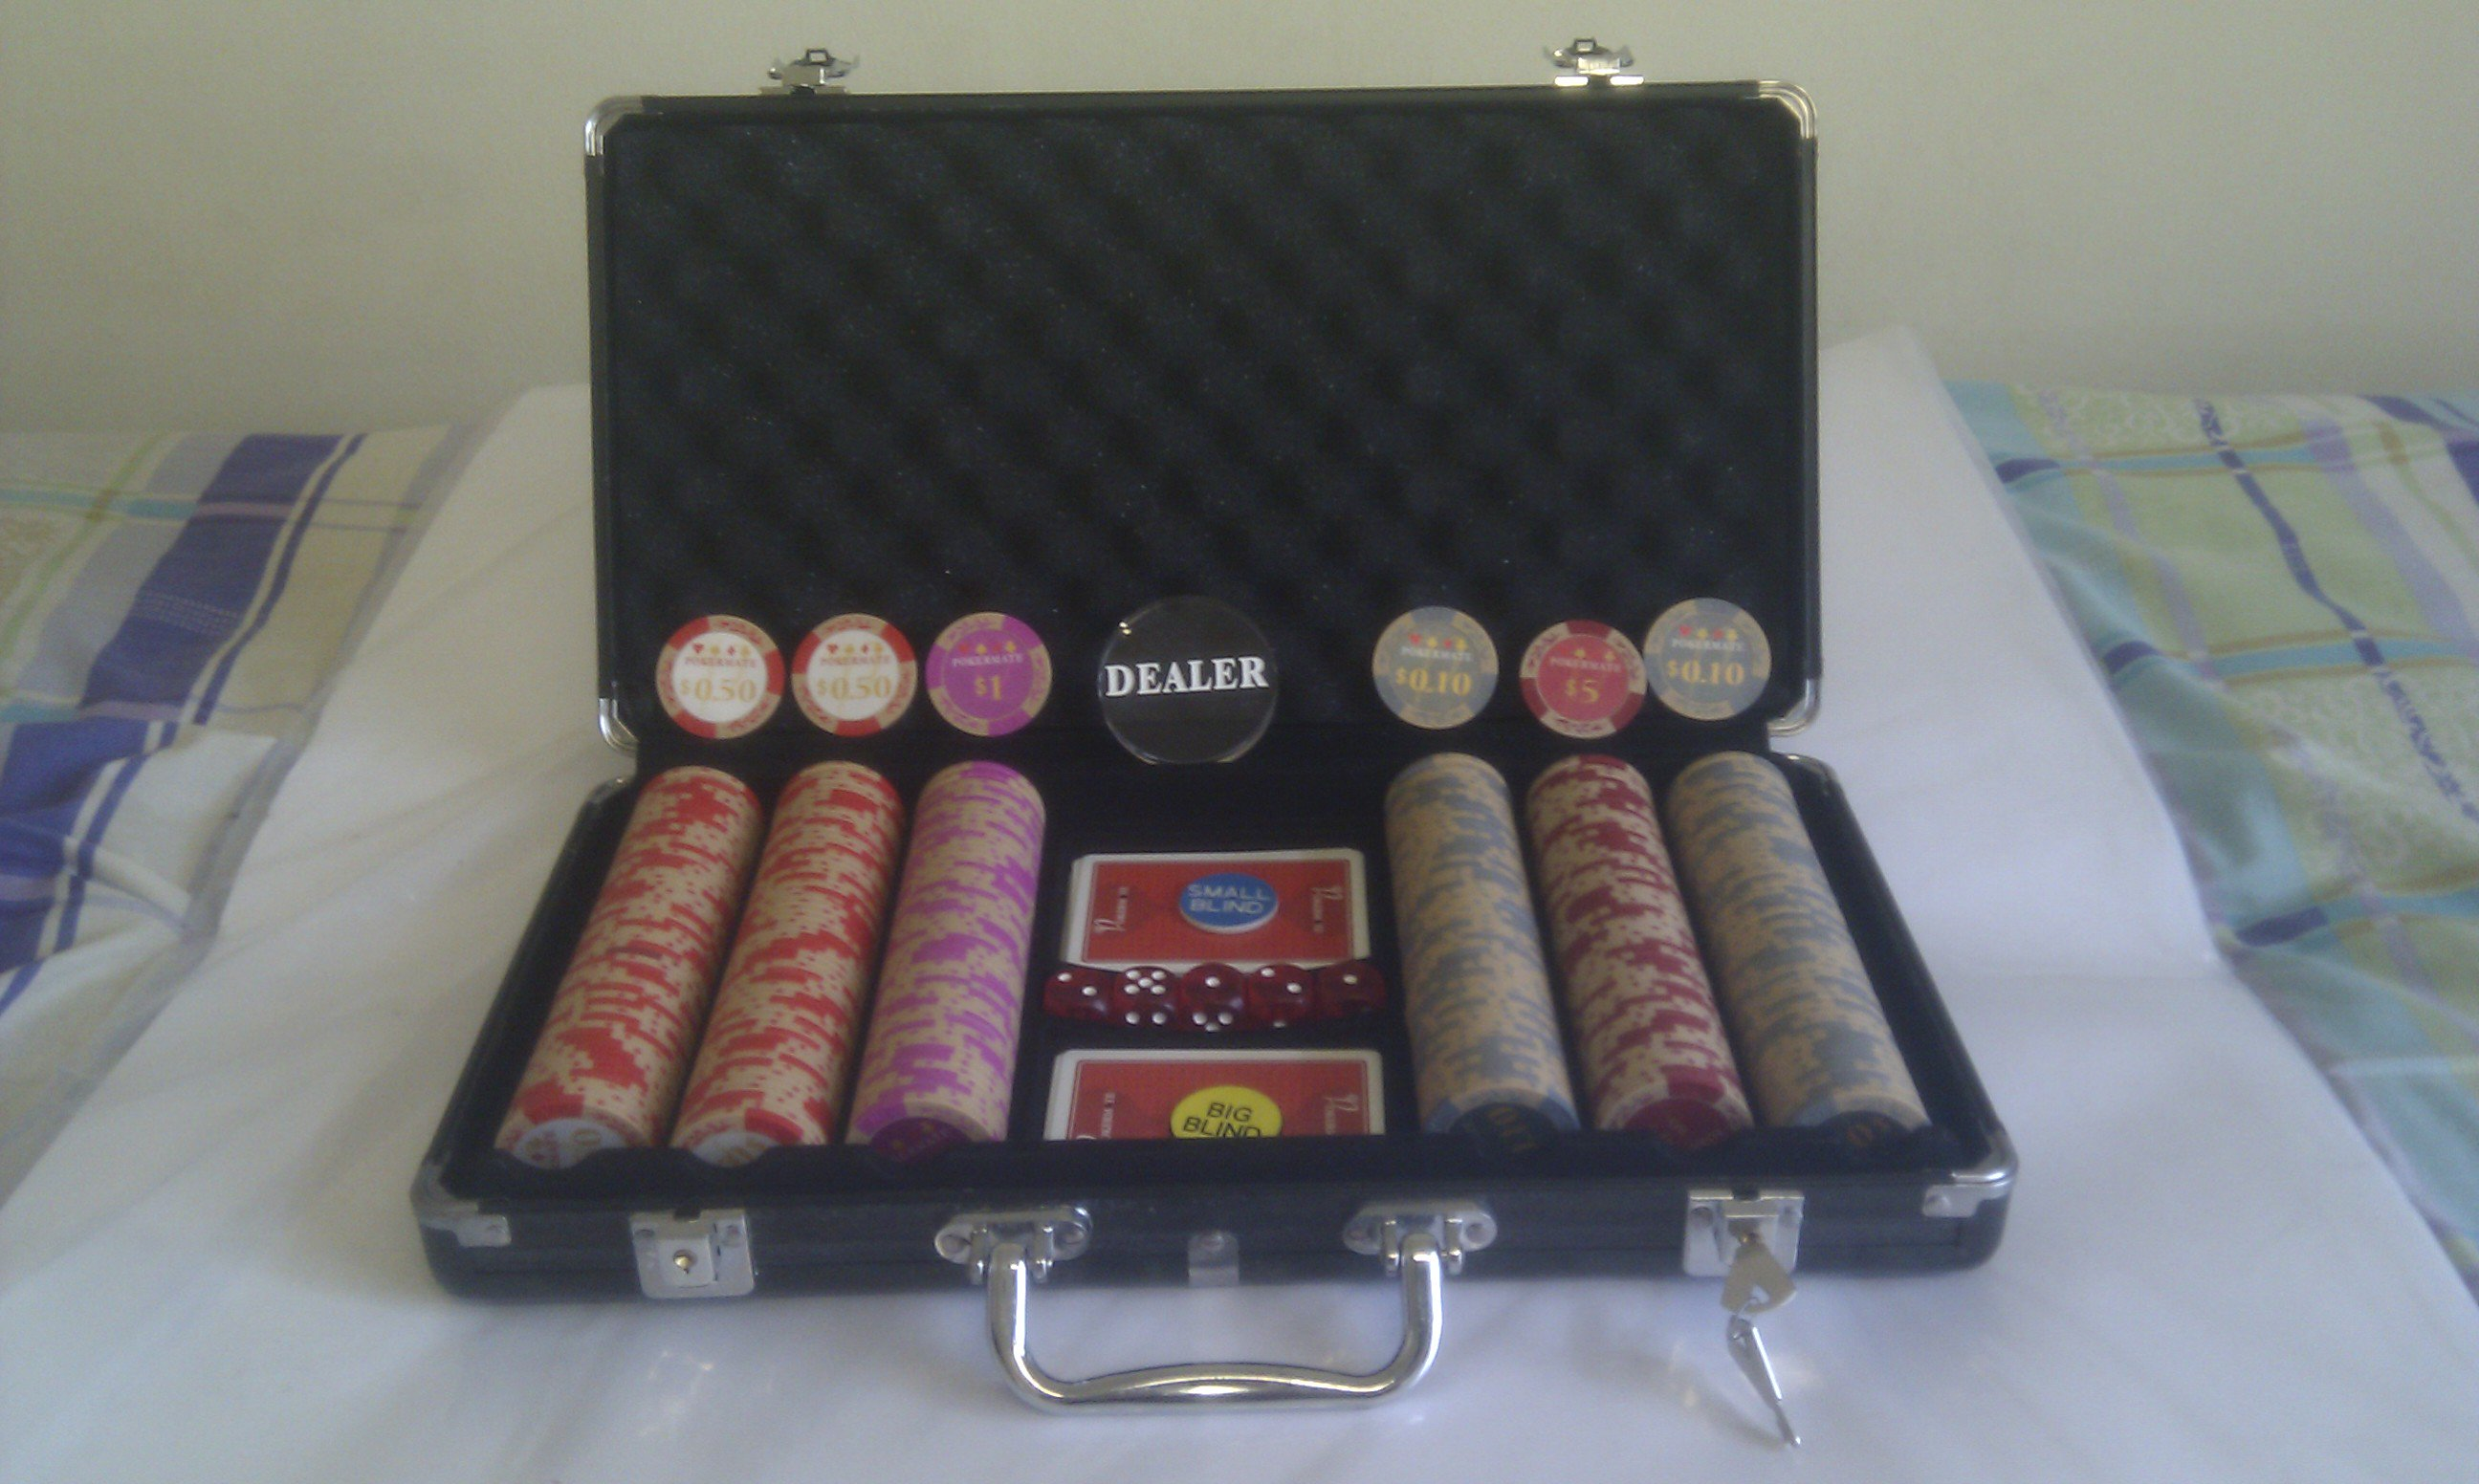 FOR SALE: Poker chips - Pokermate Classic 300 pcs